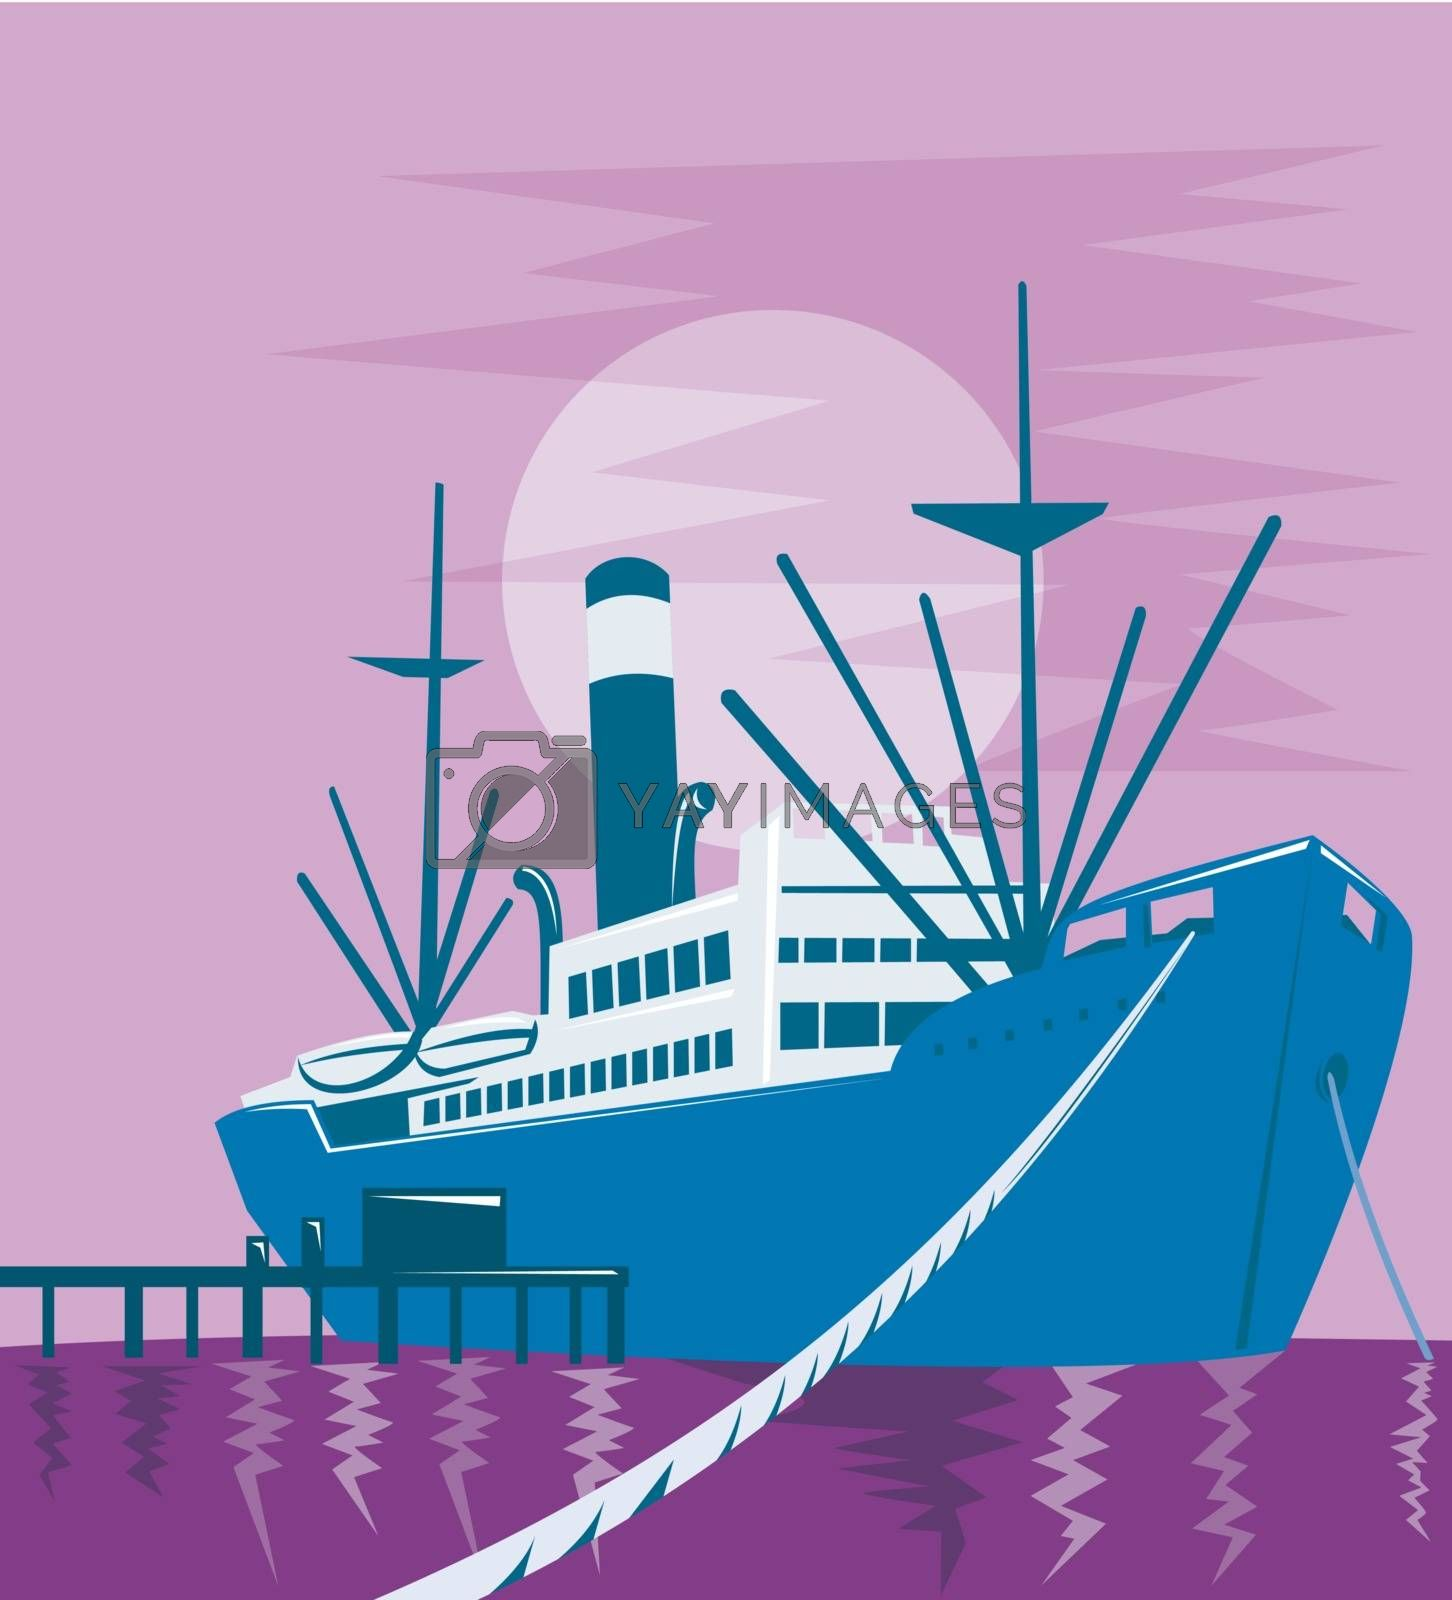 illustration of a passenger cargo ship at the docks or pier done in retro style